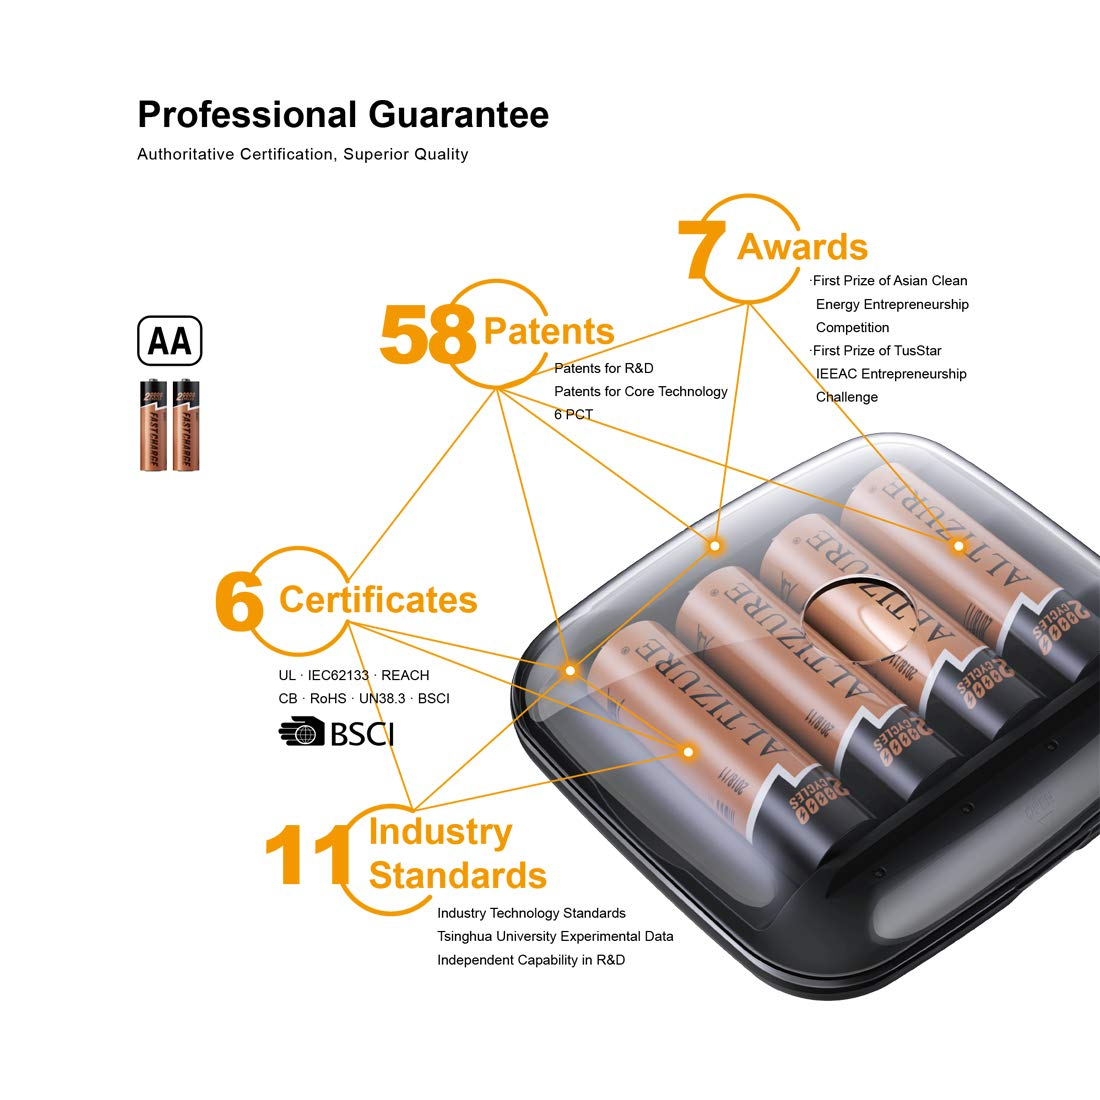 ALTIZURE 15 Minutes Full,20000 Cycles Rechargeable AA Battery Charger with 4 AA Rechargeable Lithium Ion Batteries(with USB Charger and Charging Cable)